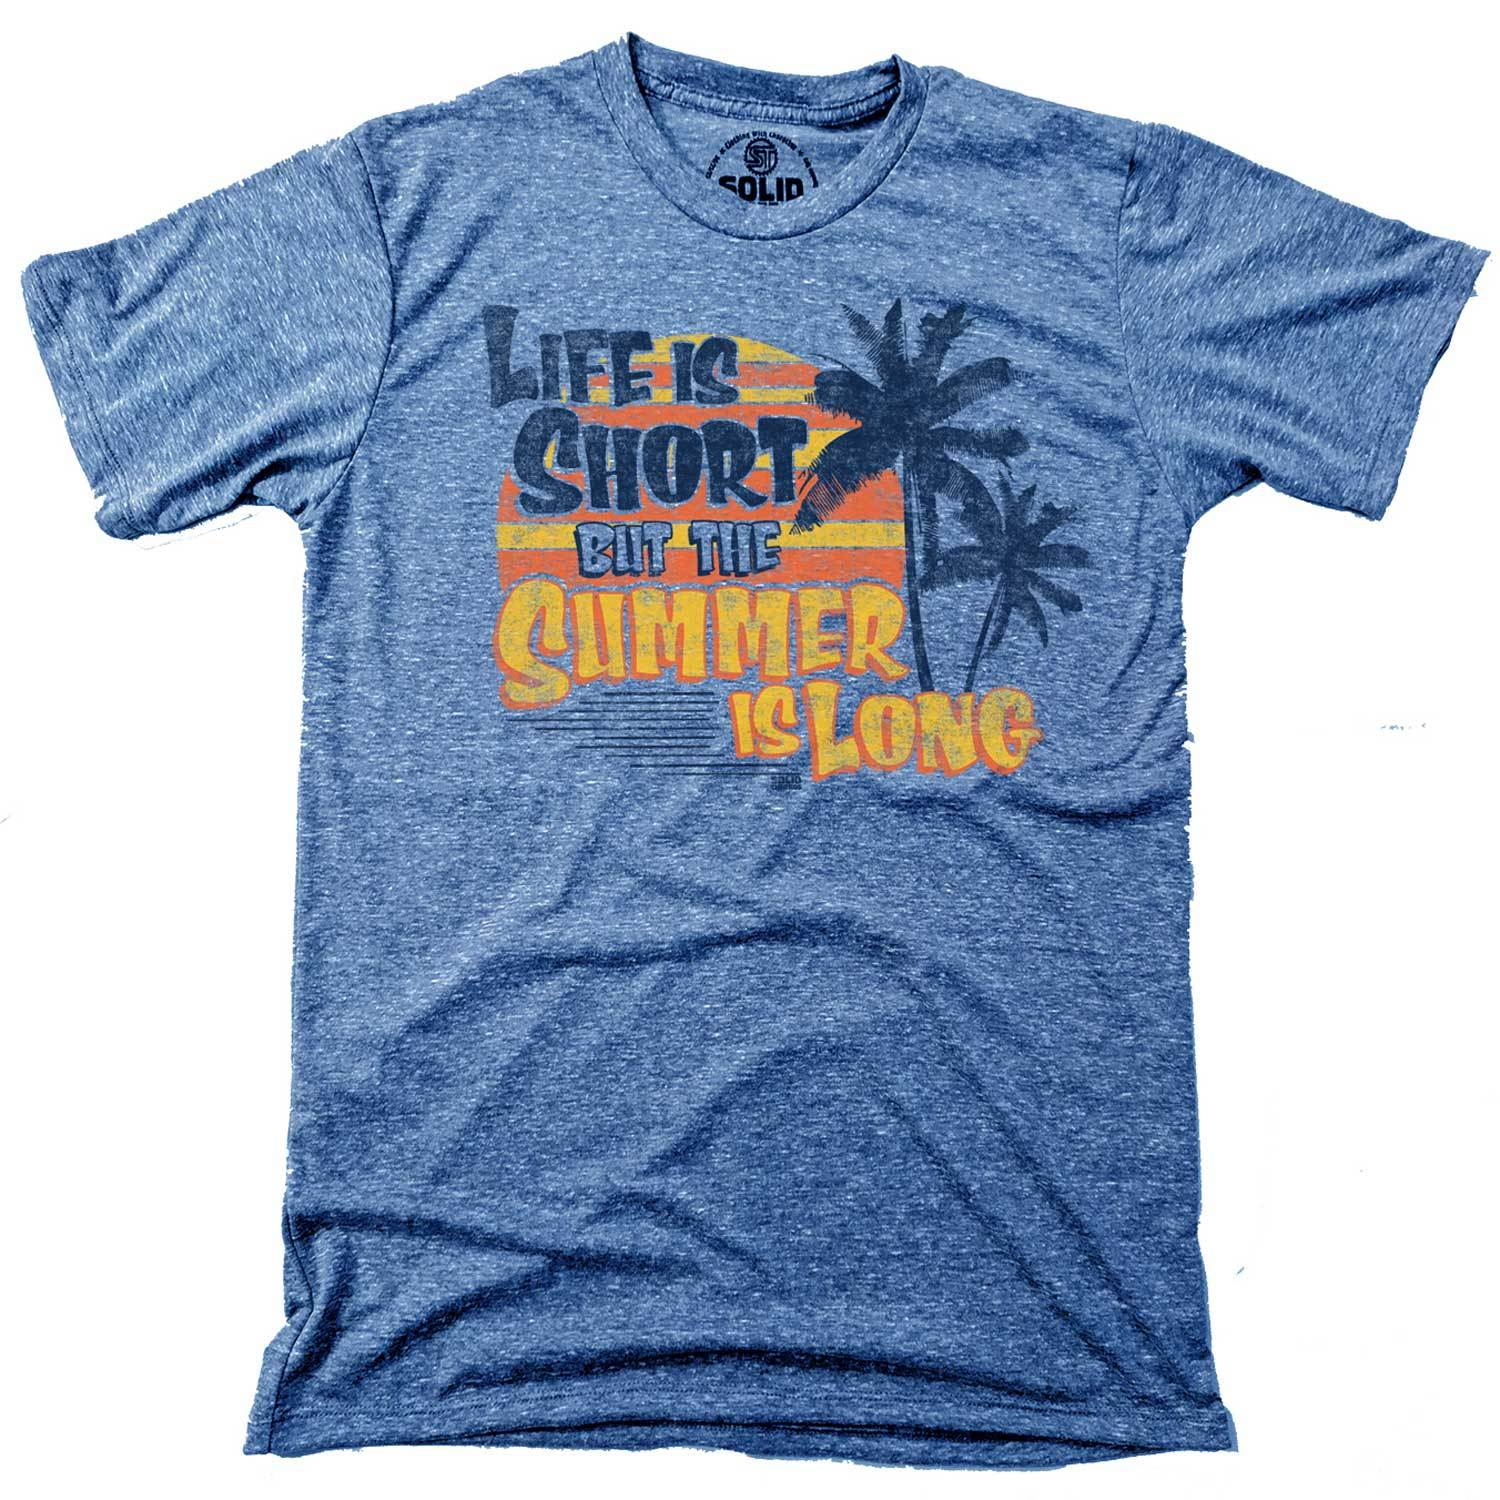 Men's Life is Short But the Summer is Long Vintage Inspired T-Shirt | Retro Beach Graphic Tee | Solid Threads